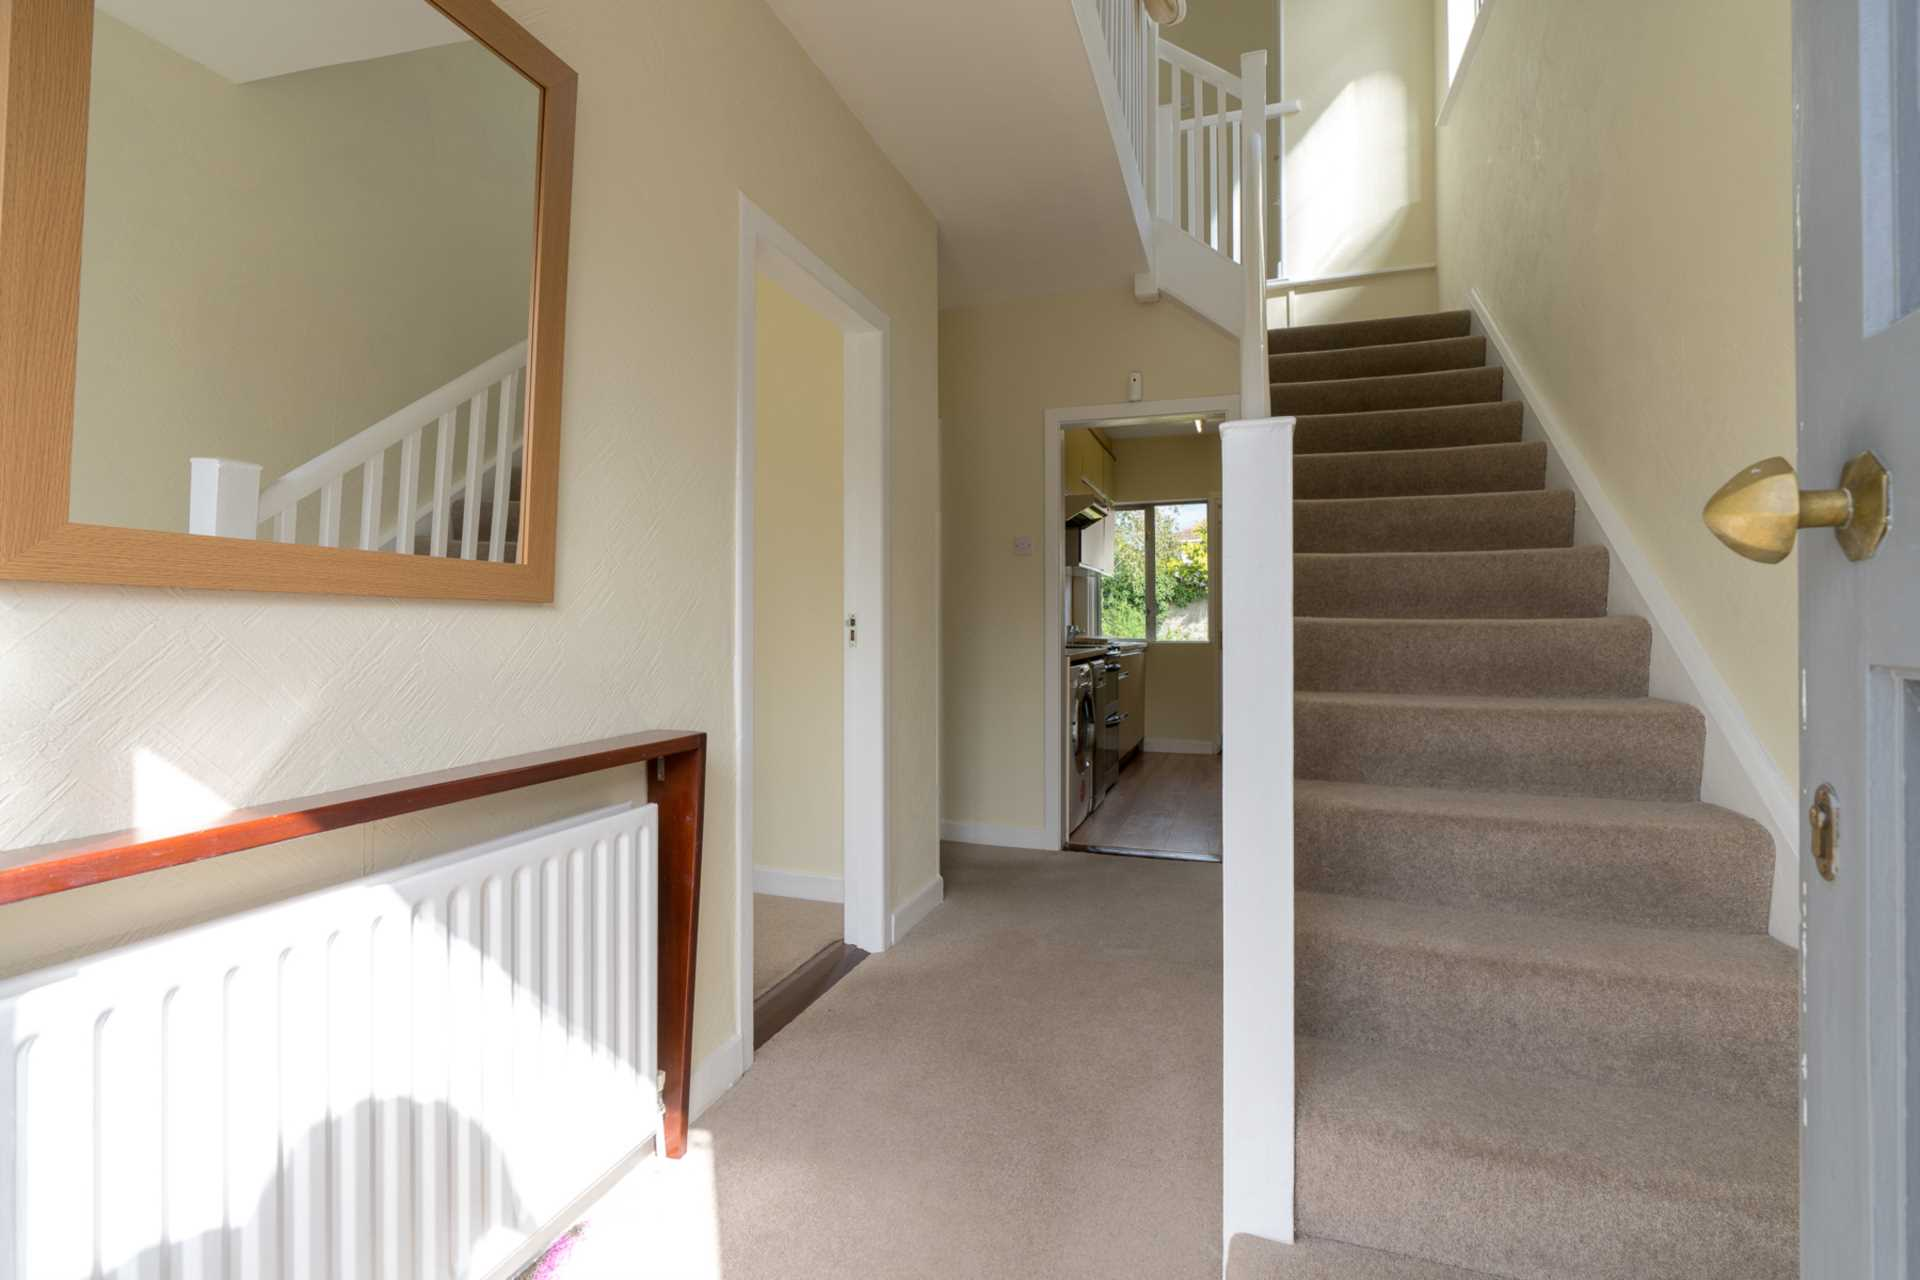 57 Seafield Crescent, Booterstown, Co Dublin, Image 8